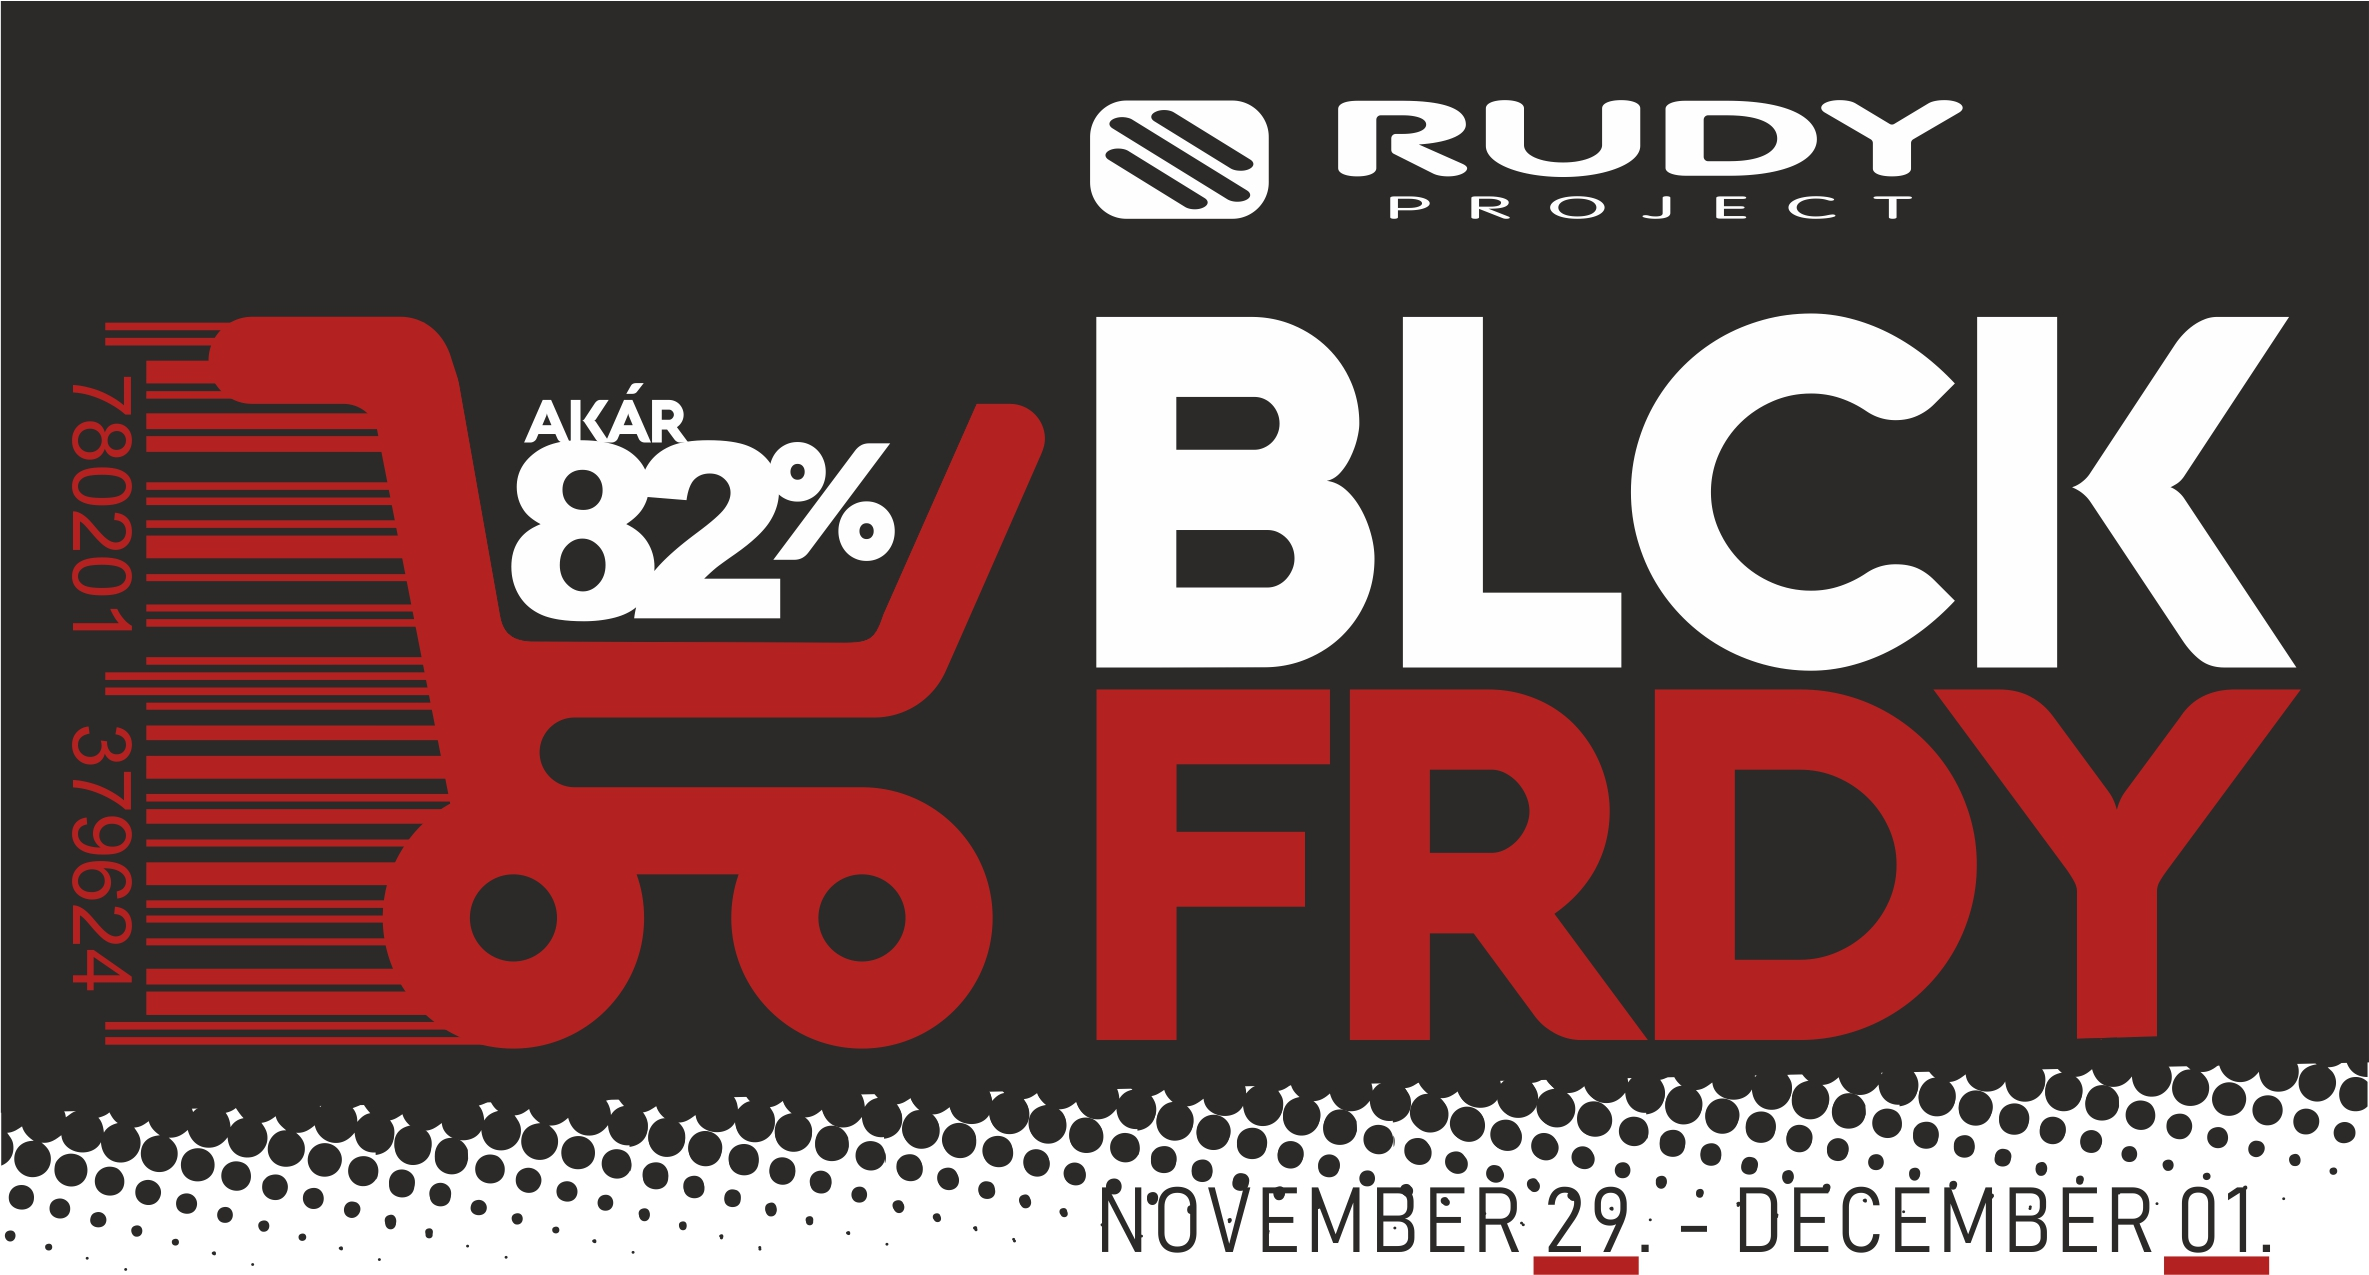 Black Friday Forrás: Rudy Project